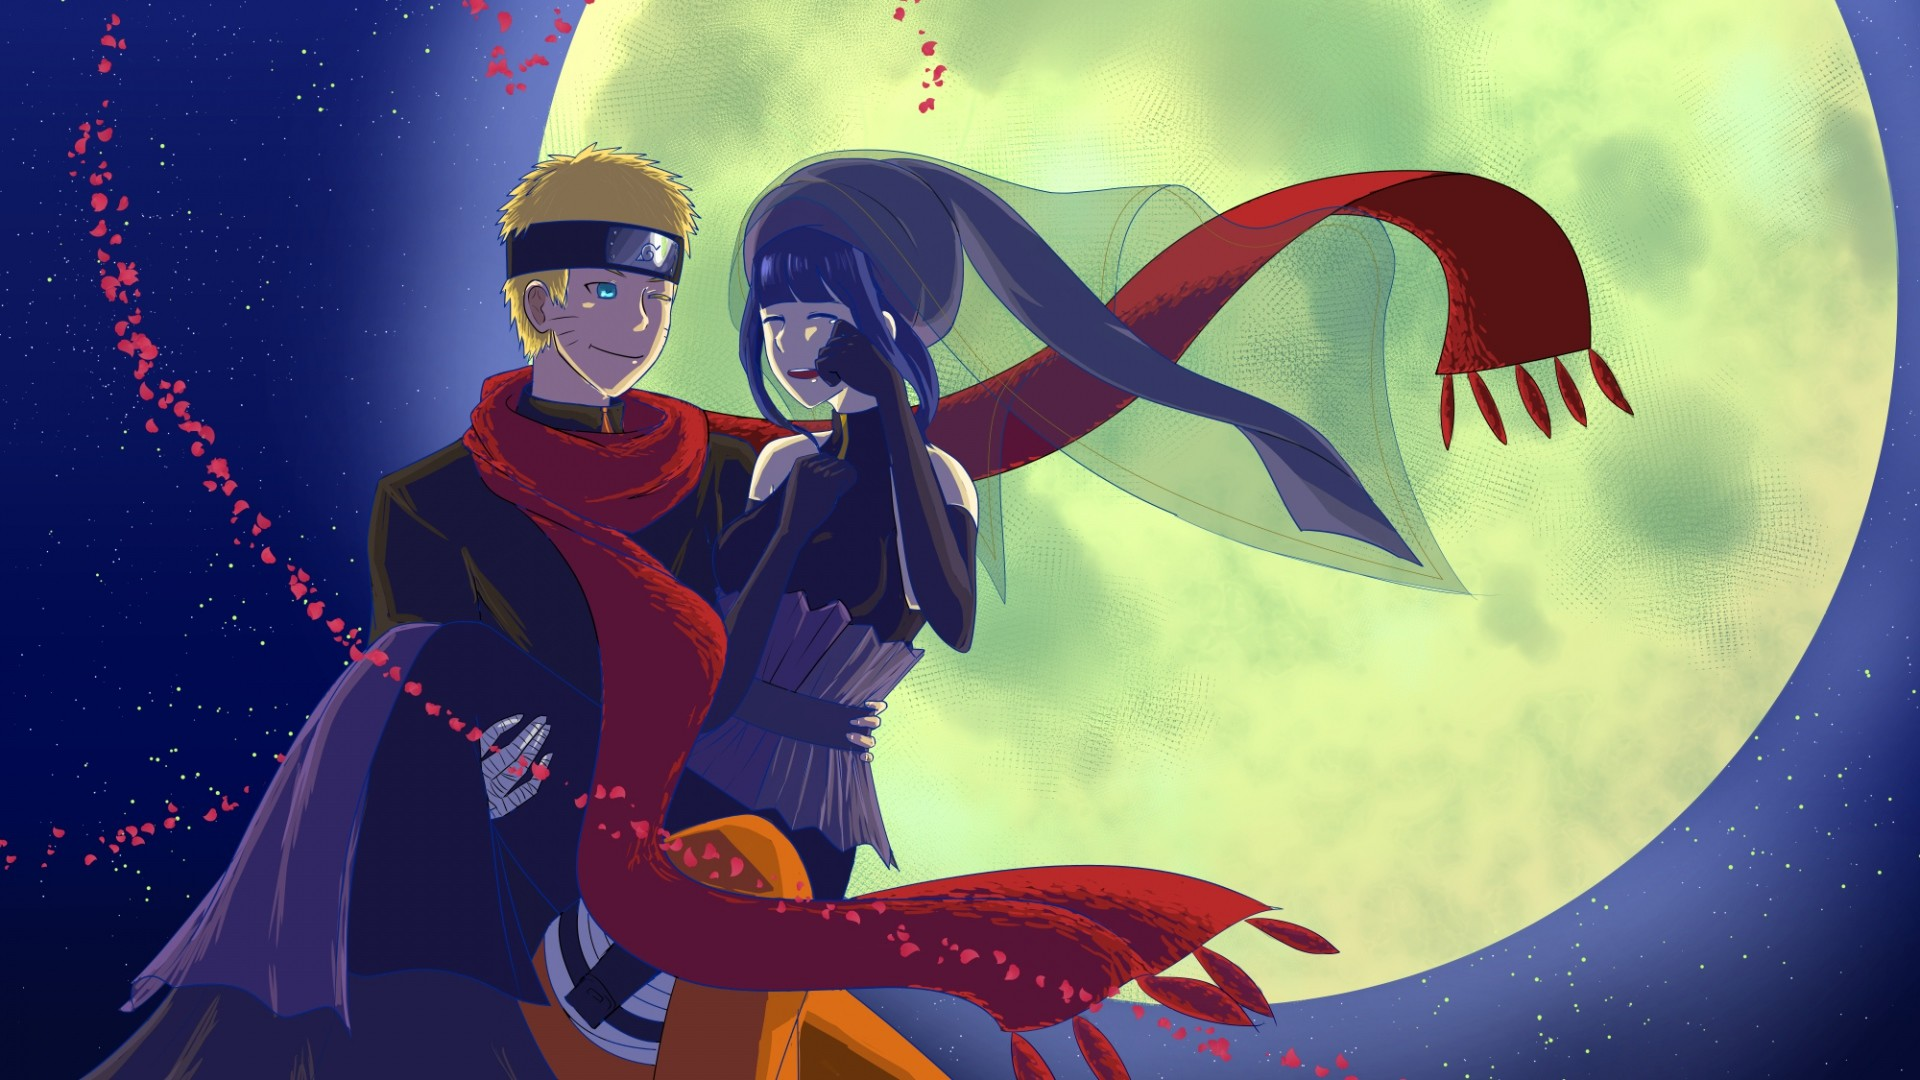 Naruto 1920x1080 Wallpapers 77 Background Pictures